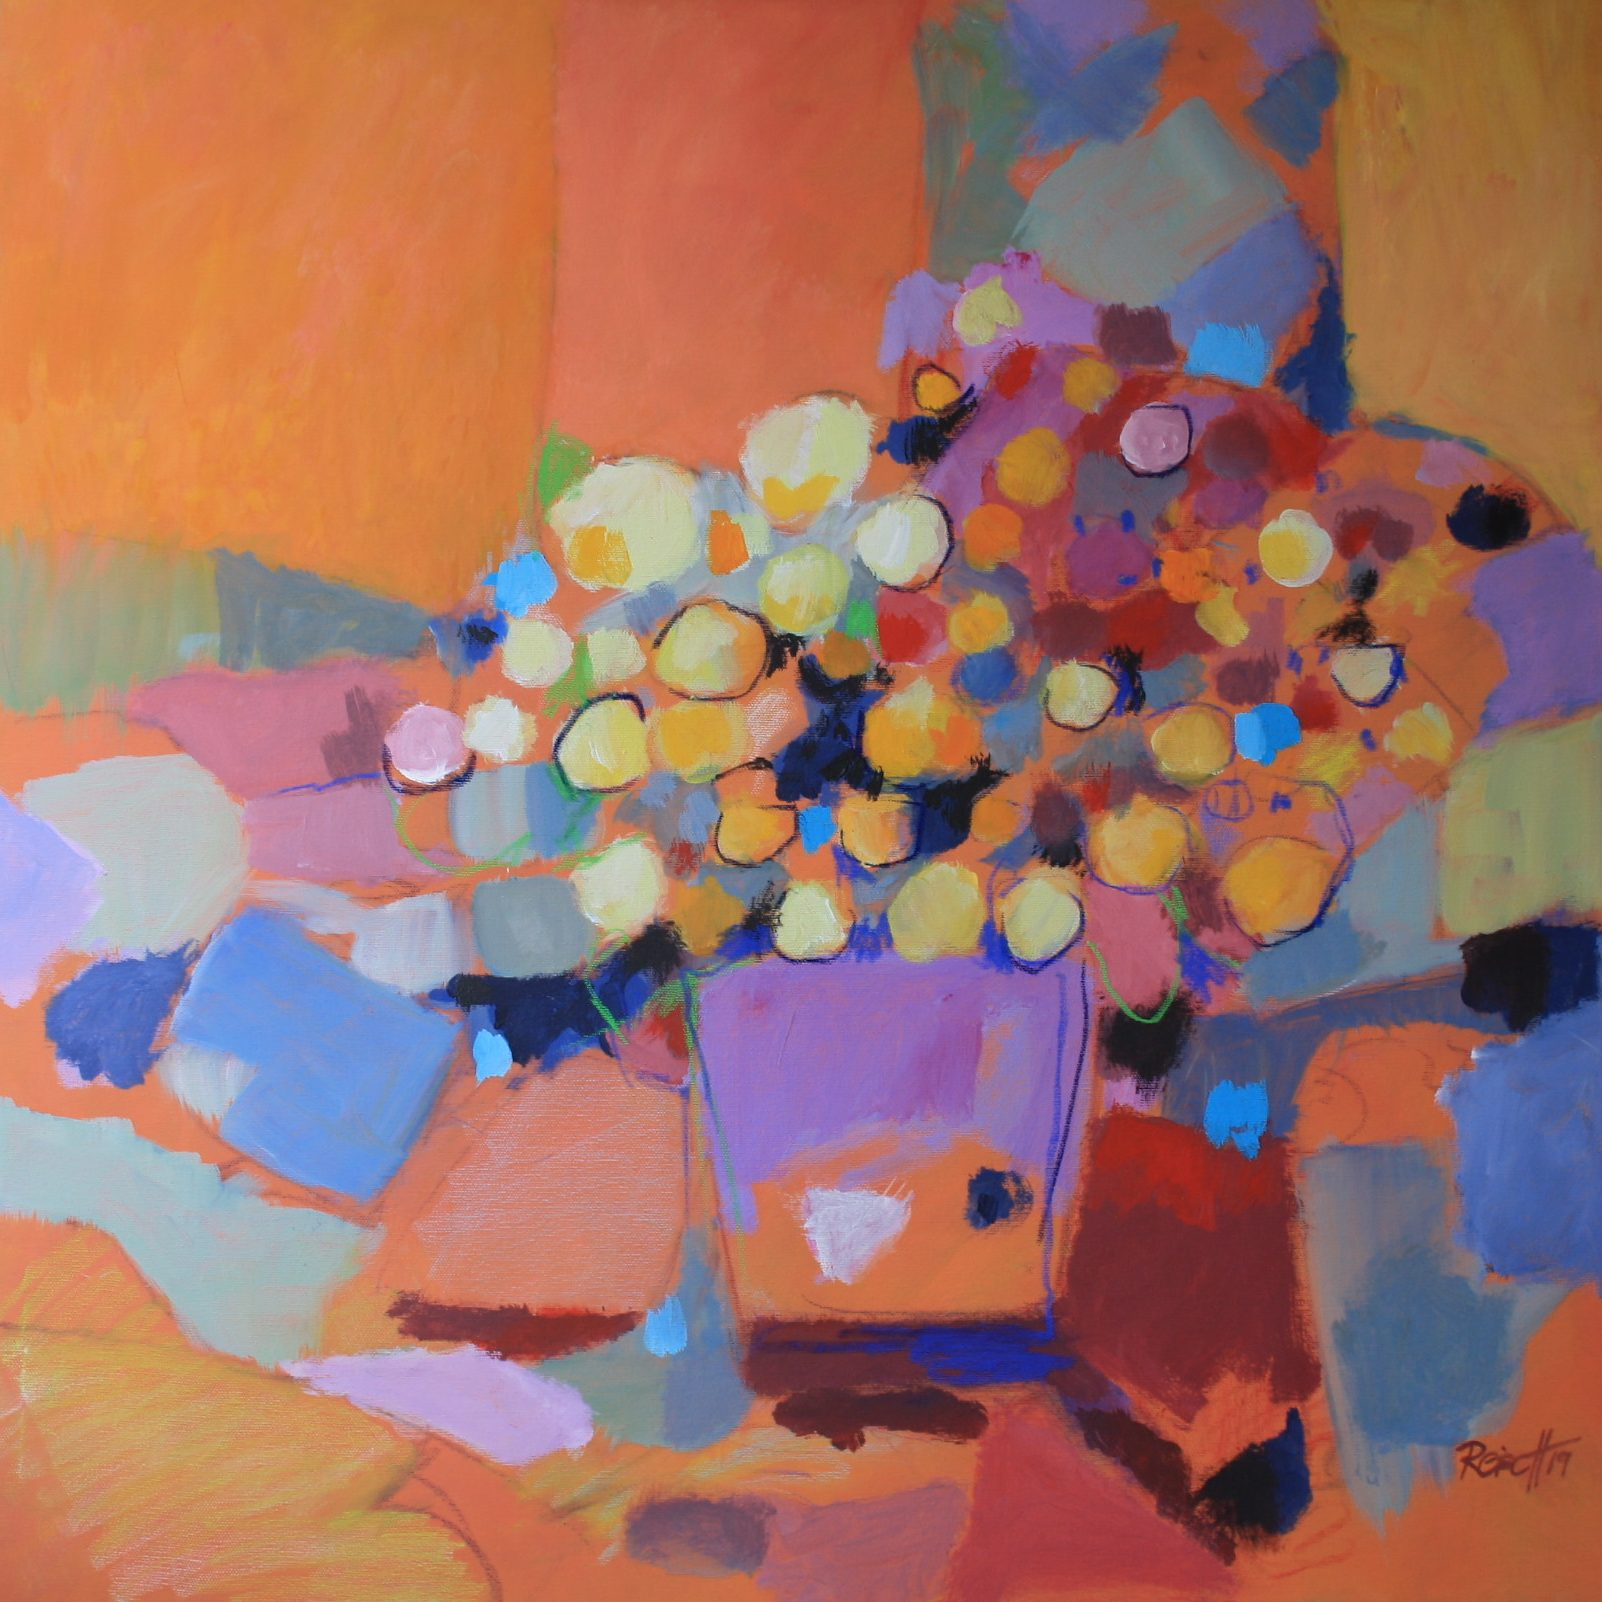 Reisch.Art: Blumen orange/violett Flowers orange/purple